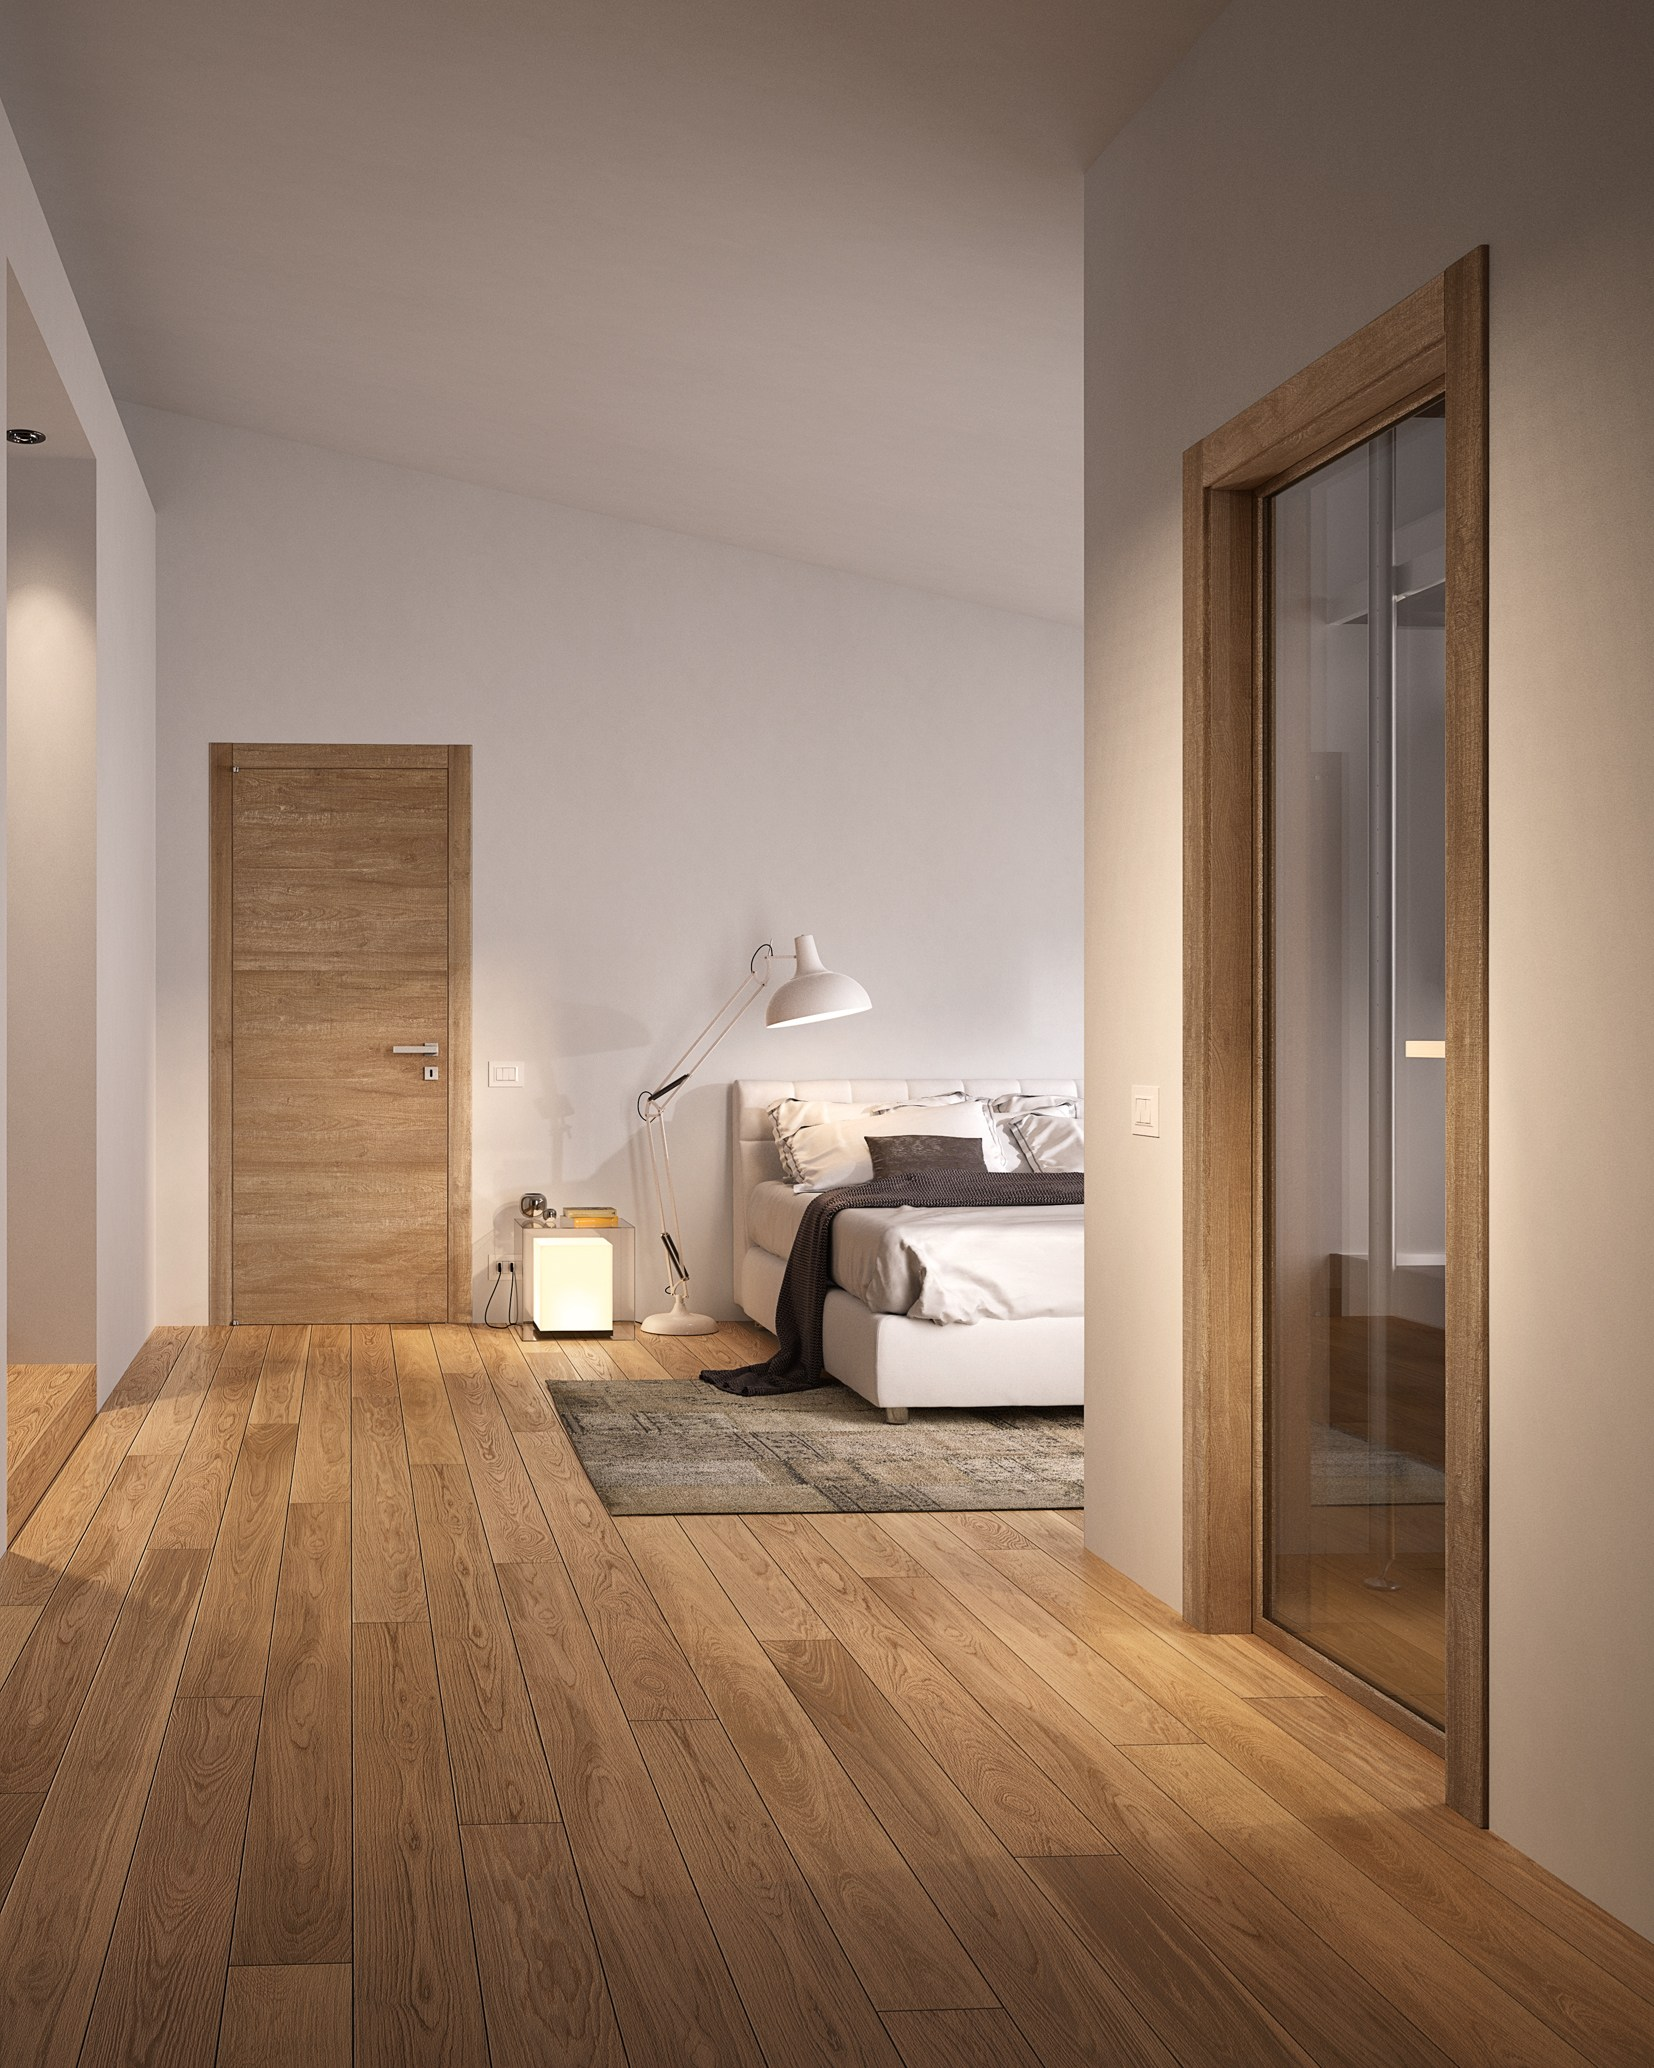 Grain porta in vetro by gidea for Abbinamento parquet e porte